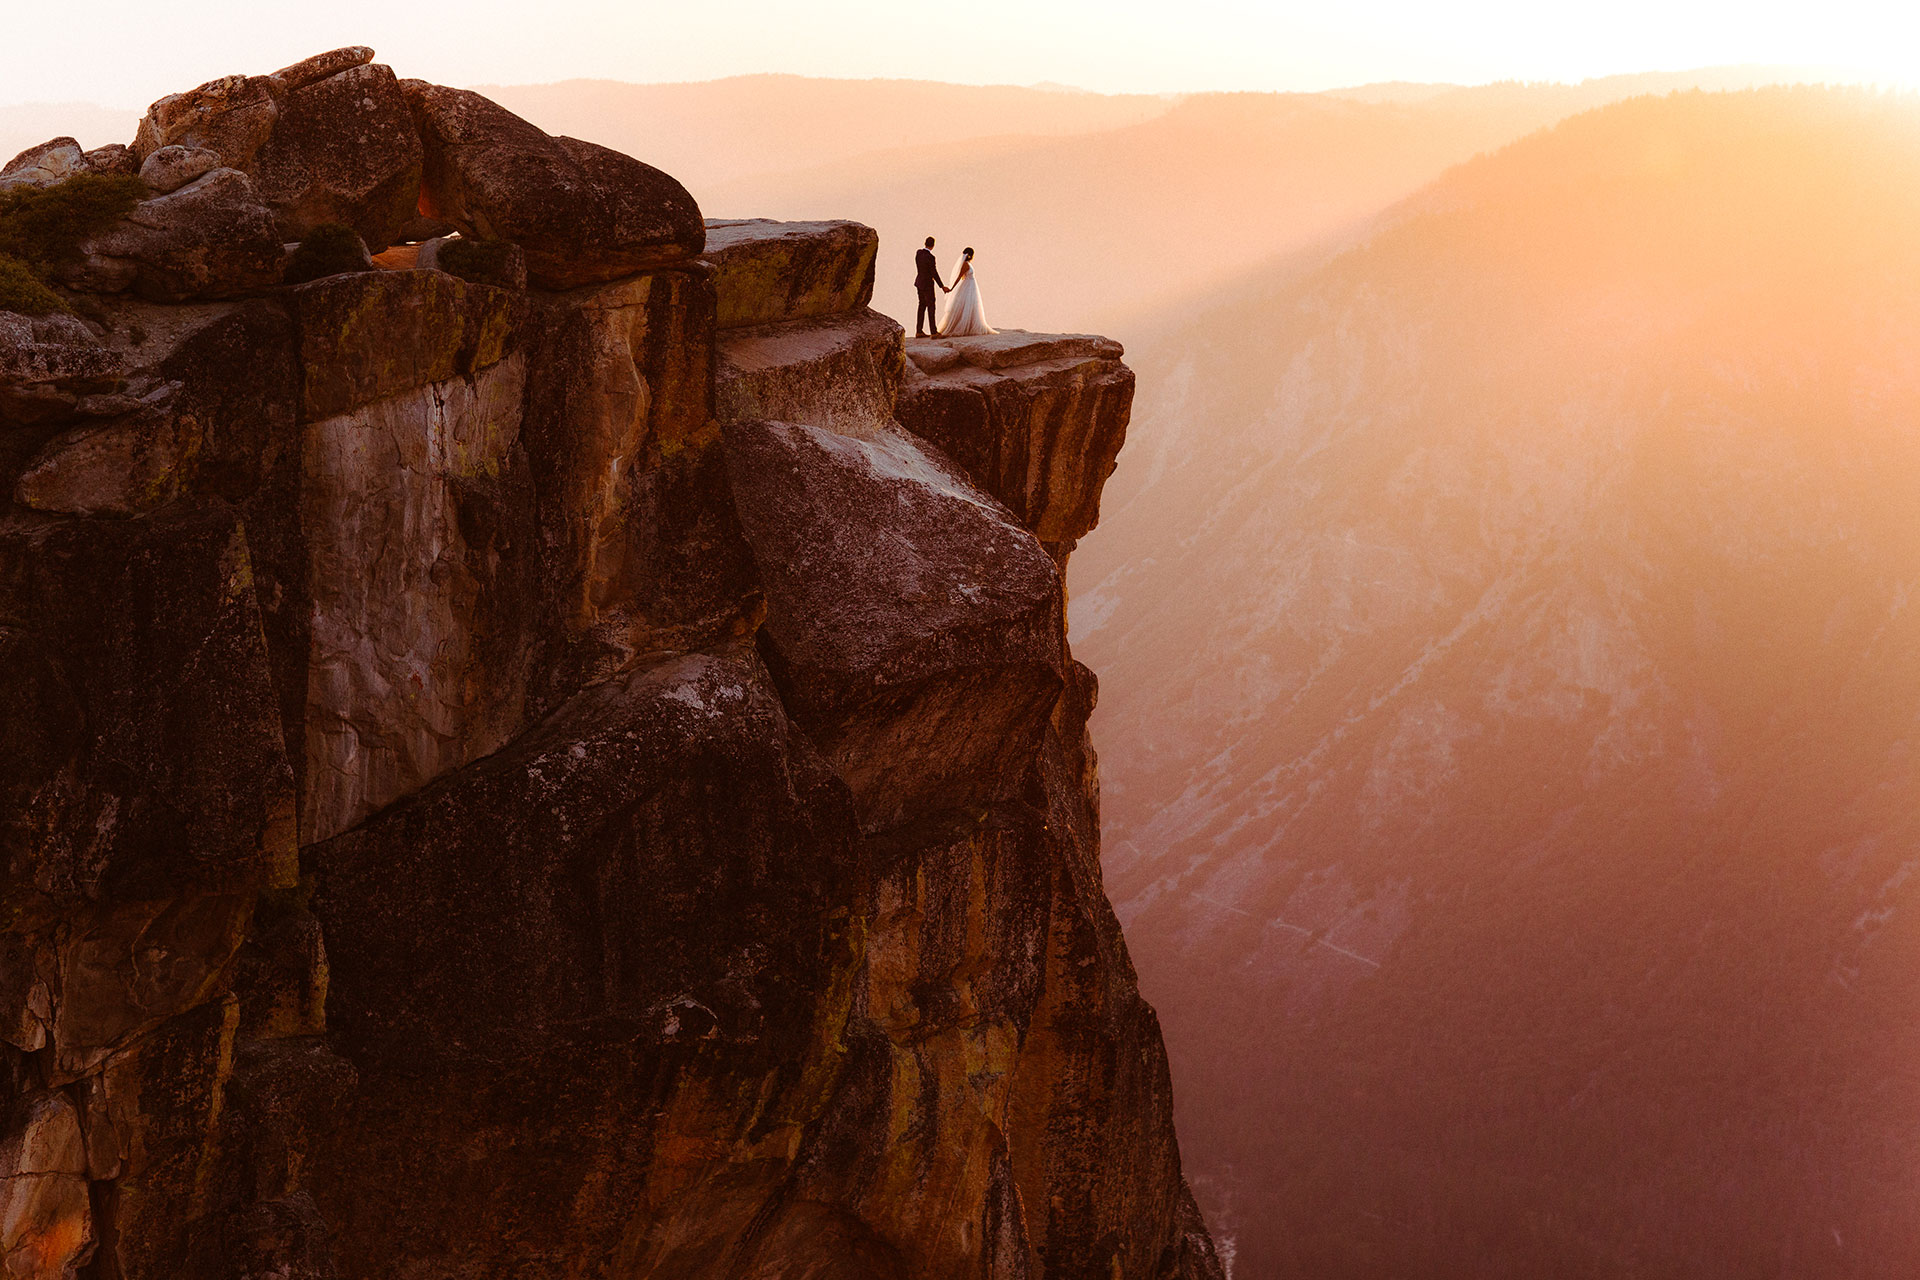 Yosemite National Park, CA, Adventure Elopement Images   Taking in Yosemite in all it's glory as the sun is about to set